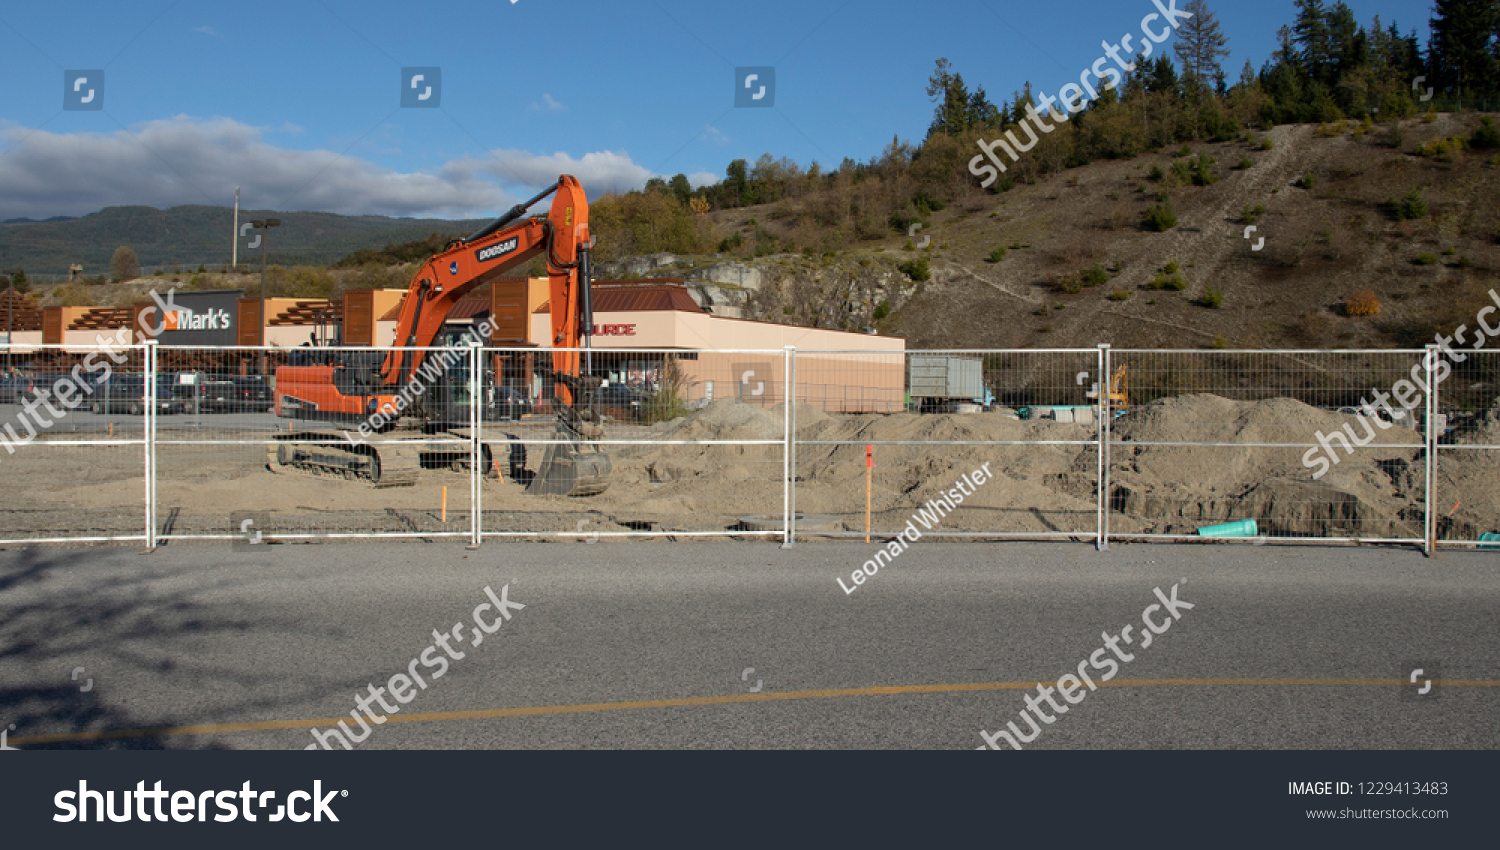 stock-photo-sechelt-british-columbia-can